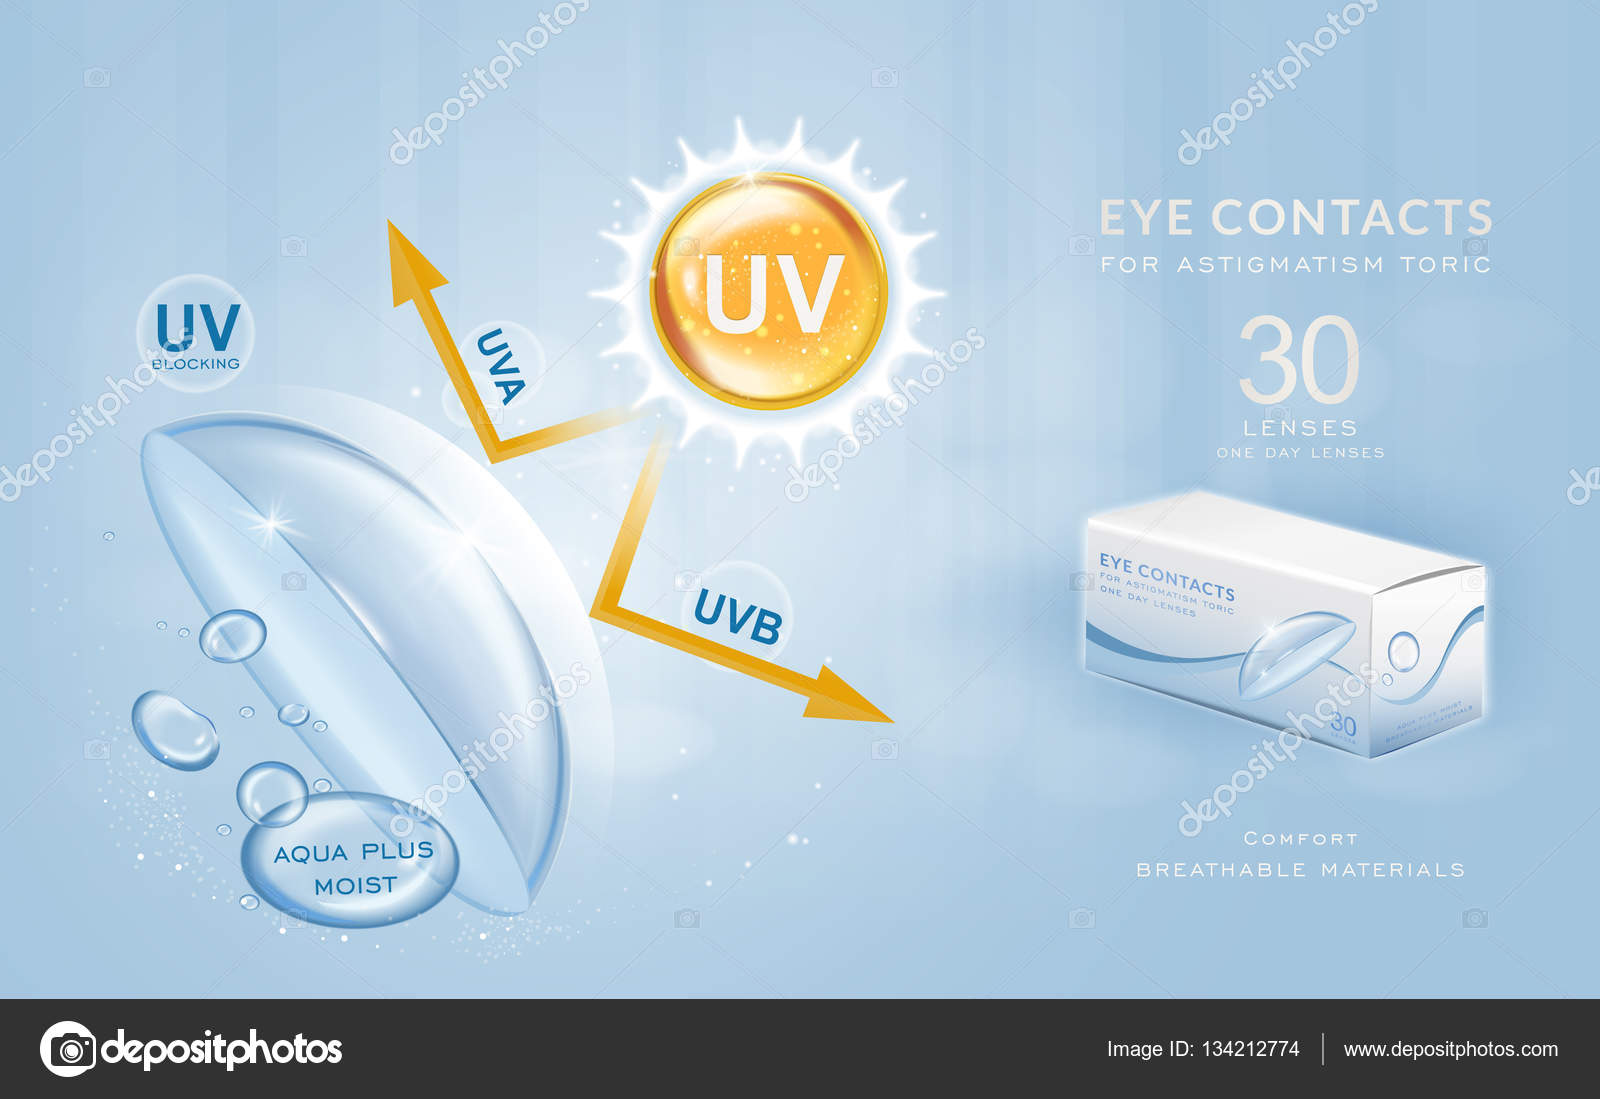 hight resolution of eye contacts ads template stock vector